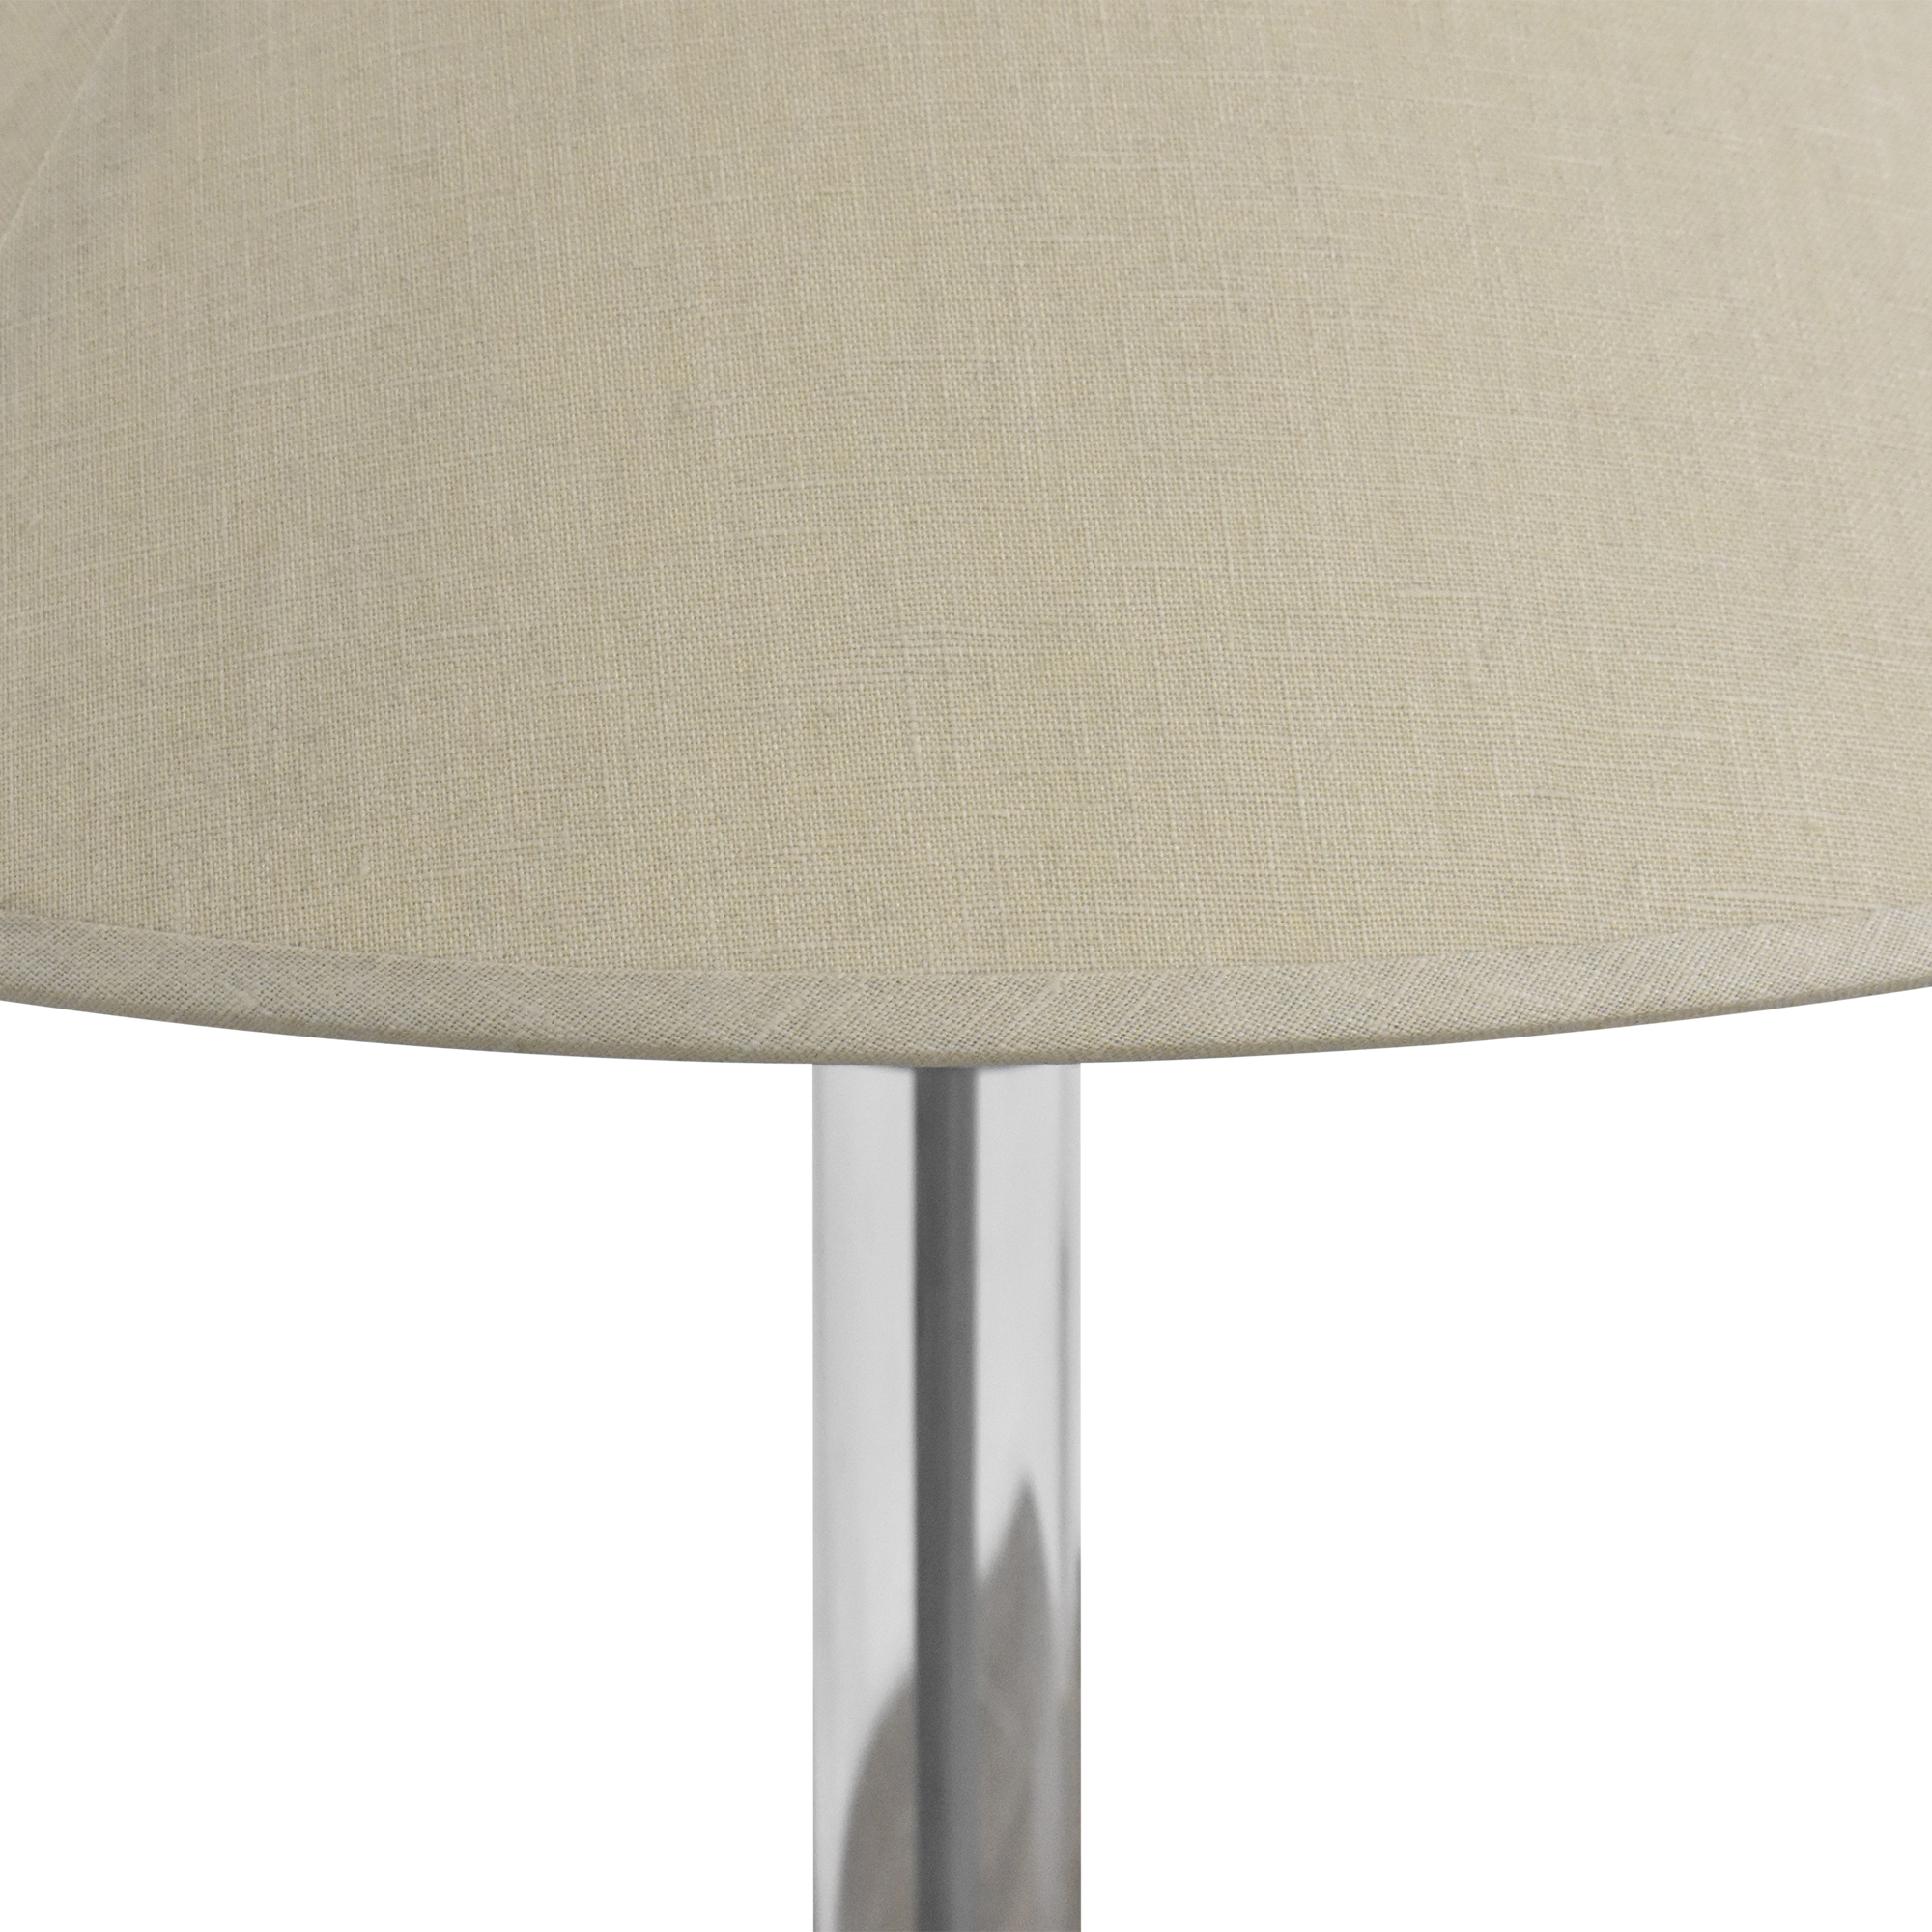 Restoration Hardware Restoration Hardware Column Table Lamp